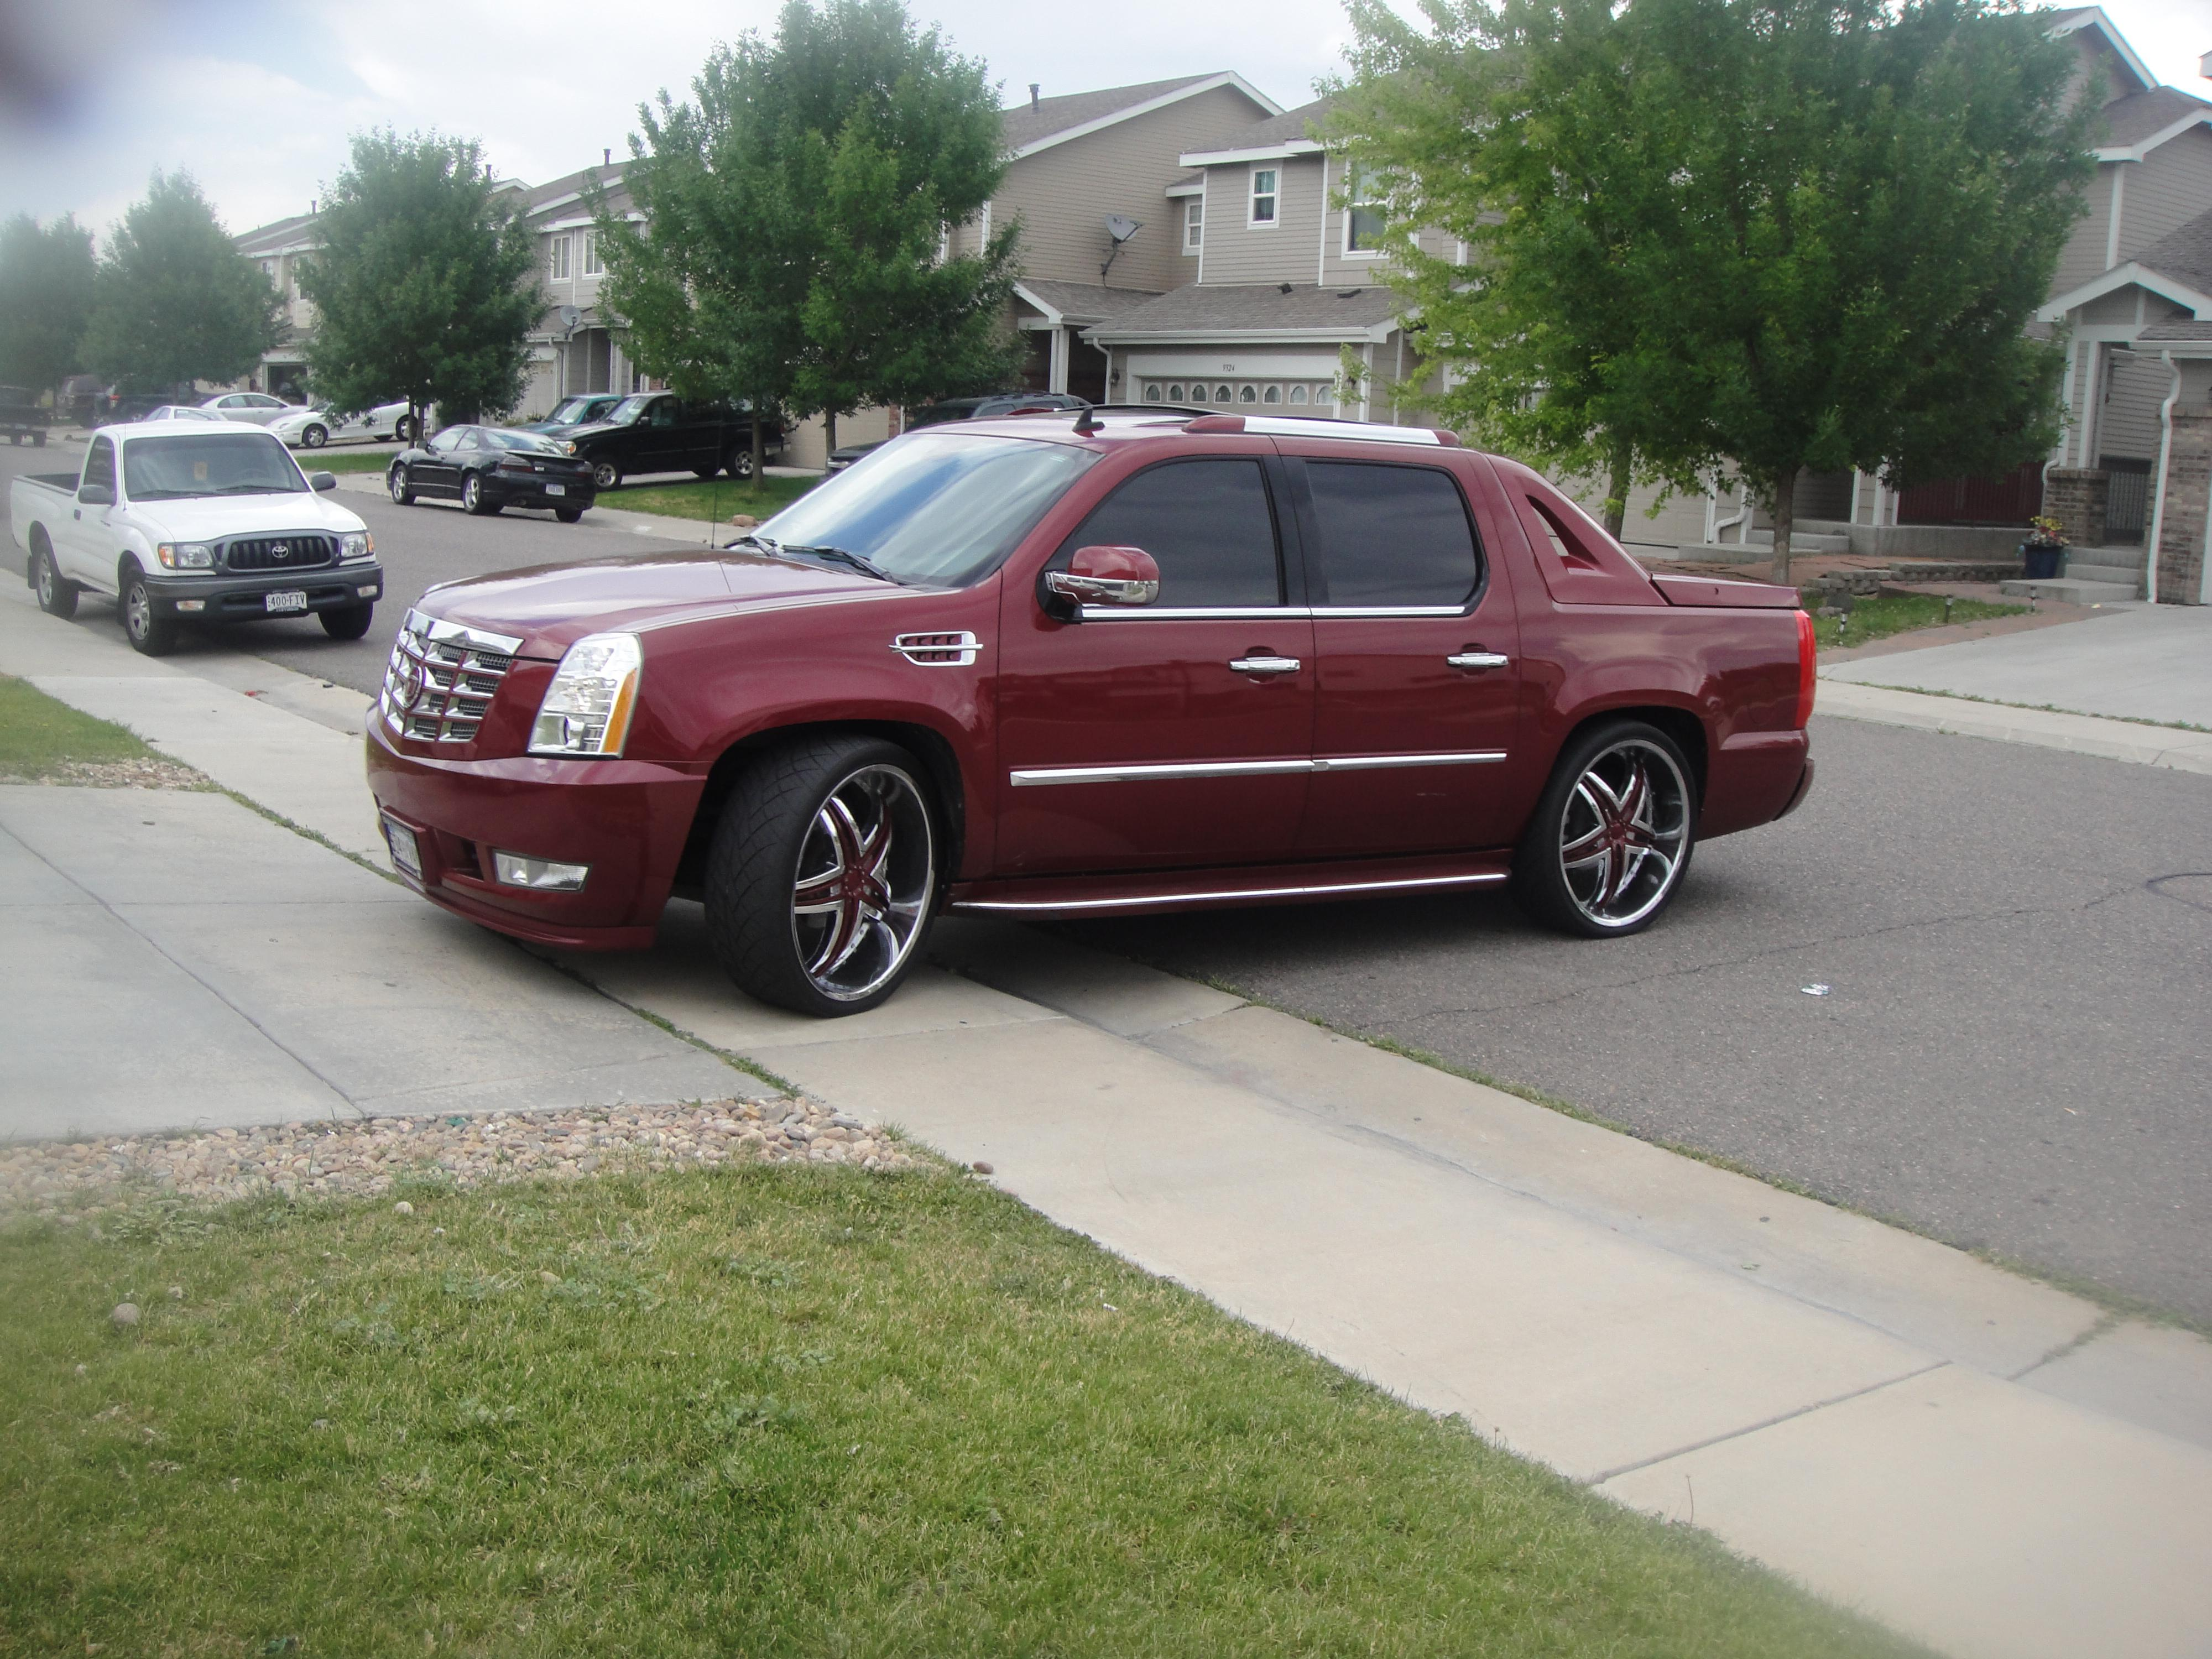 2008 Cadillac Escalade EXT Information and photos ZombieDrive